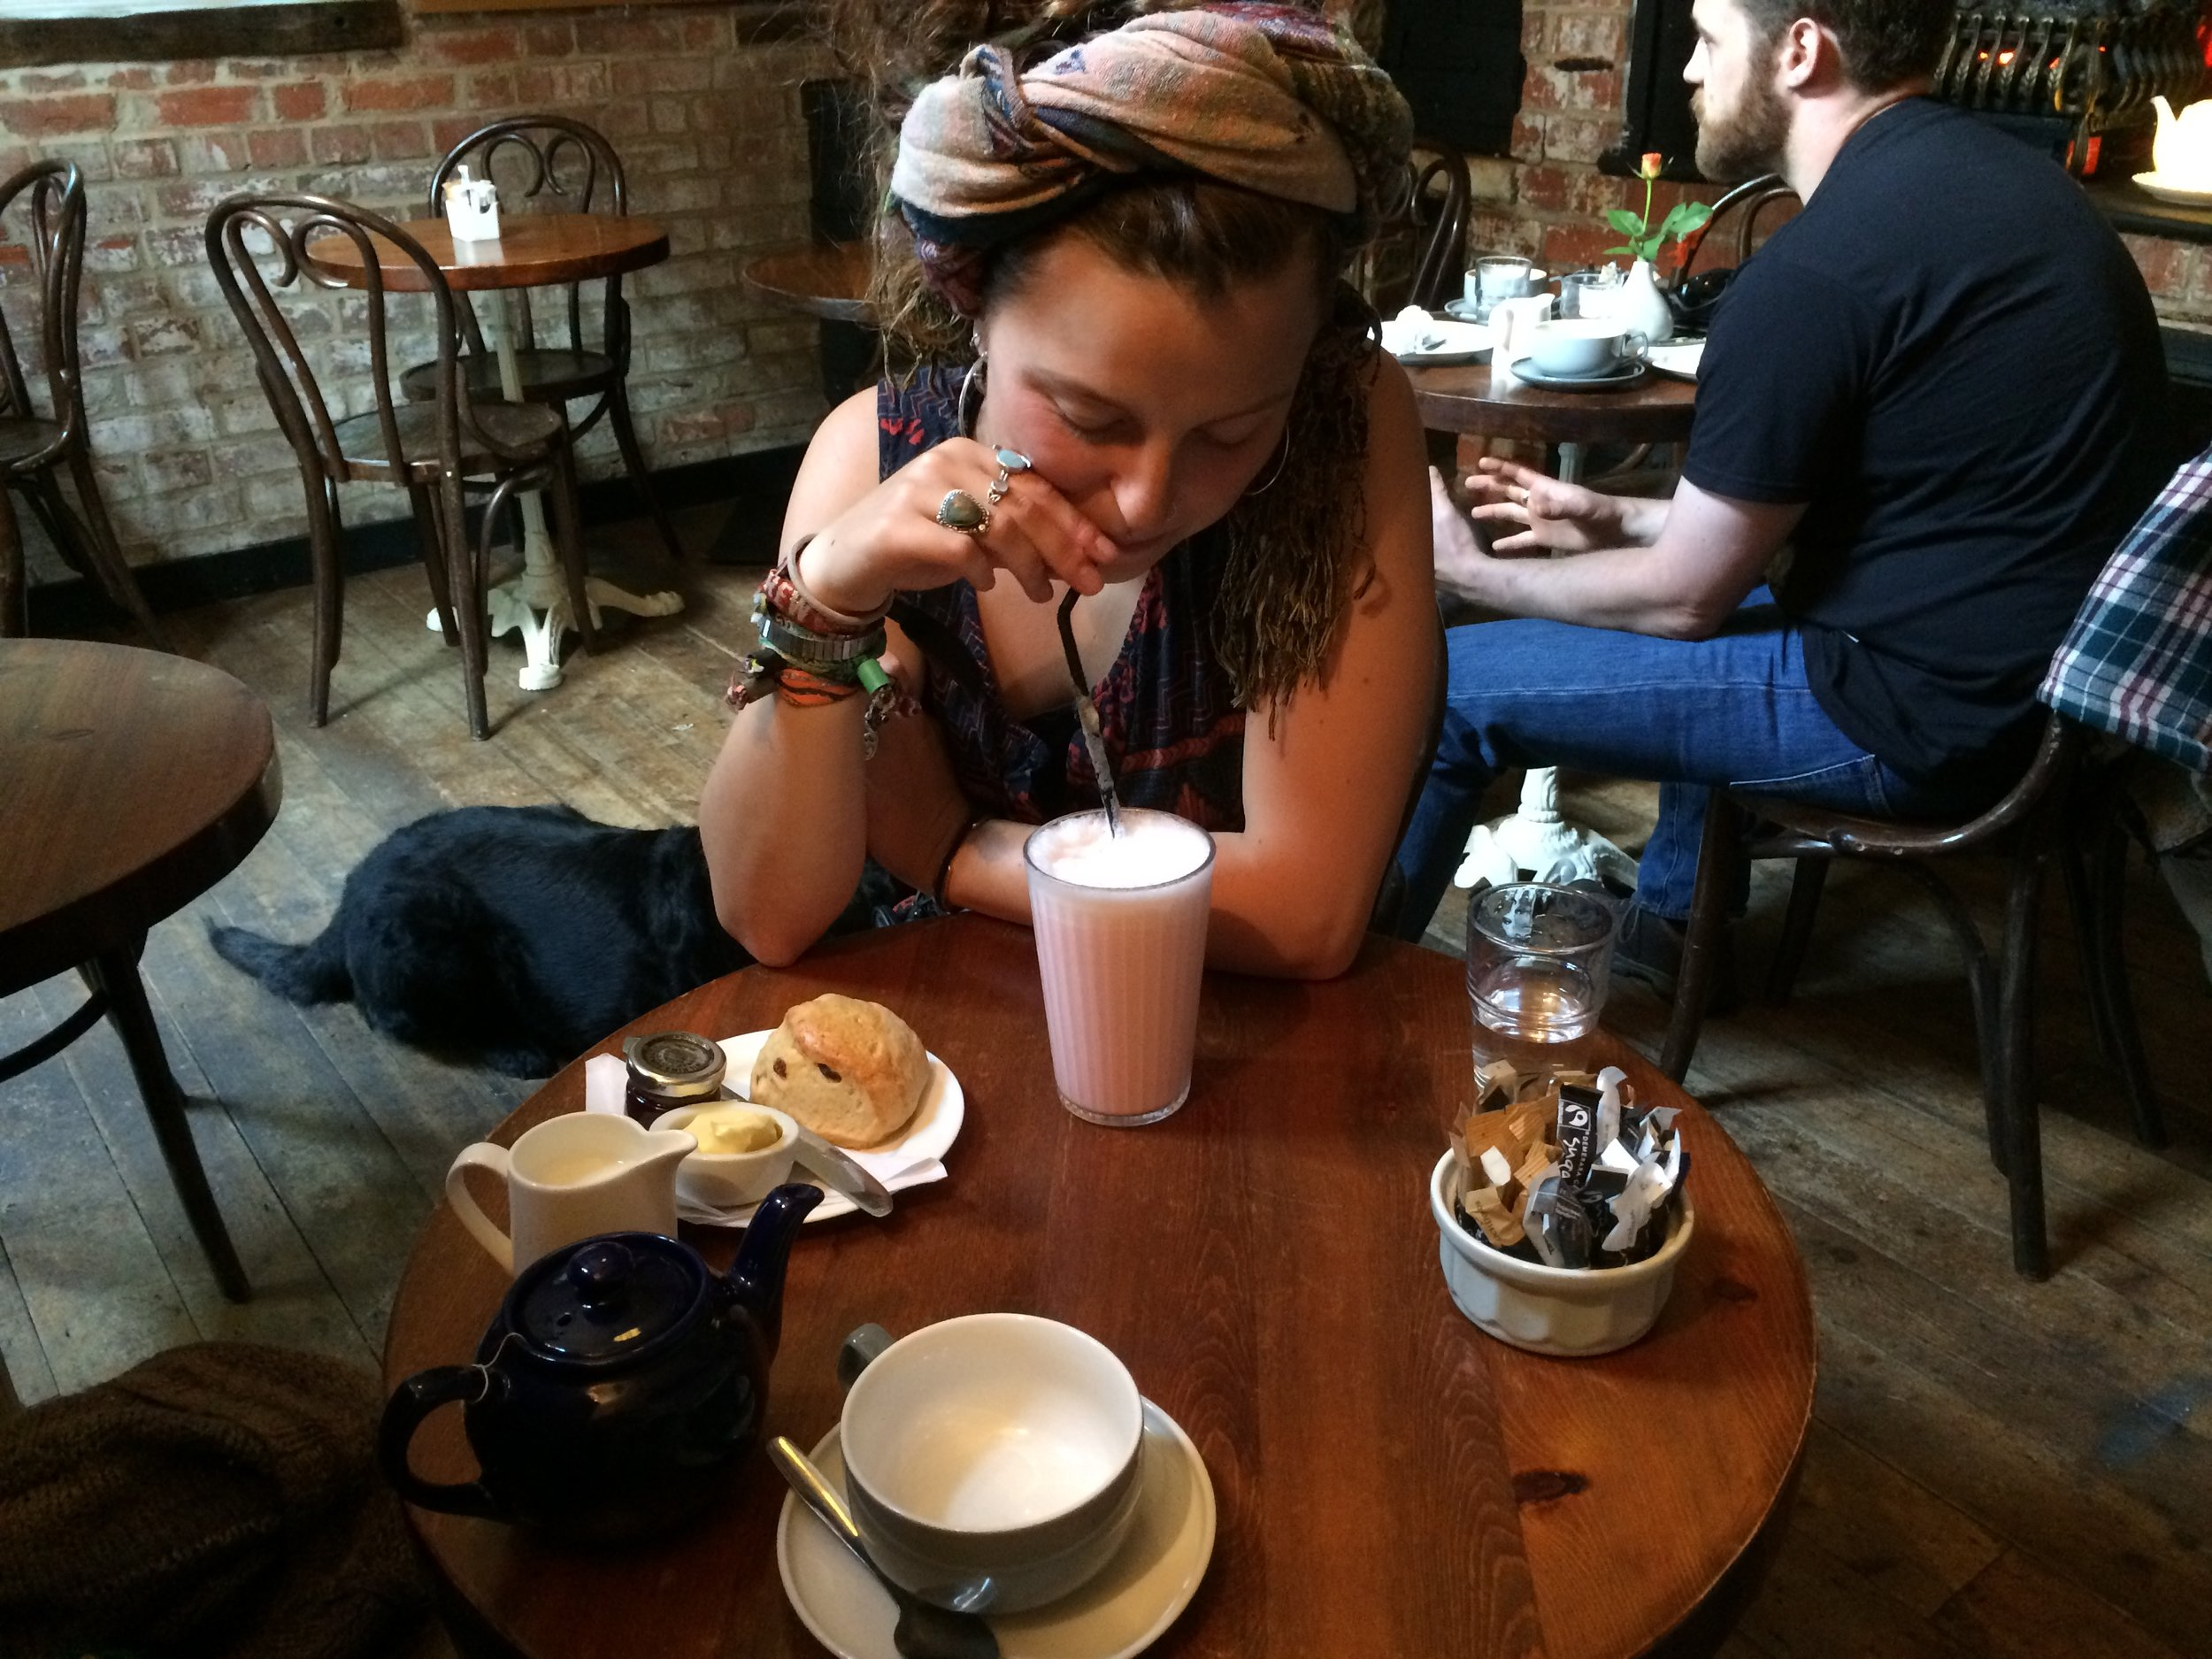 Cup of tea (Leslie) and a strawberry shake for local tattoo artist and photographer, Joelle Poulos, at the Hot Gossip Coffeehouse we often frequented due to homemade pastries.